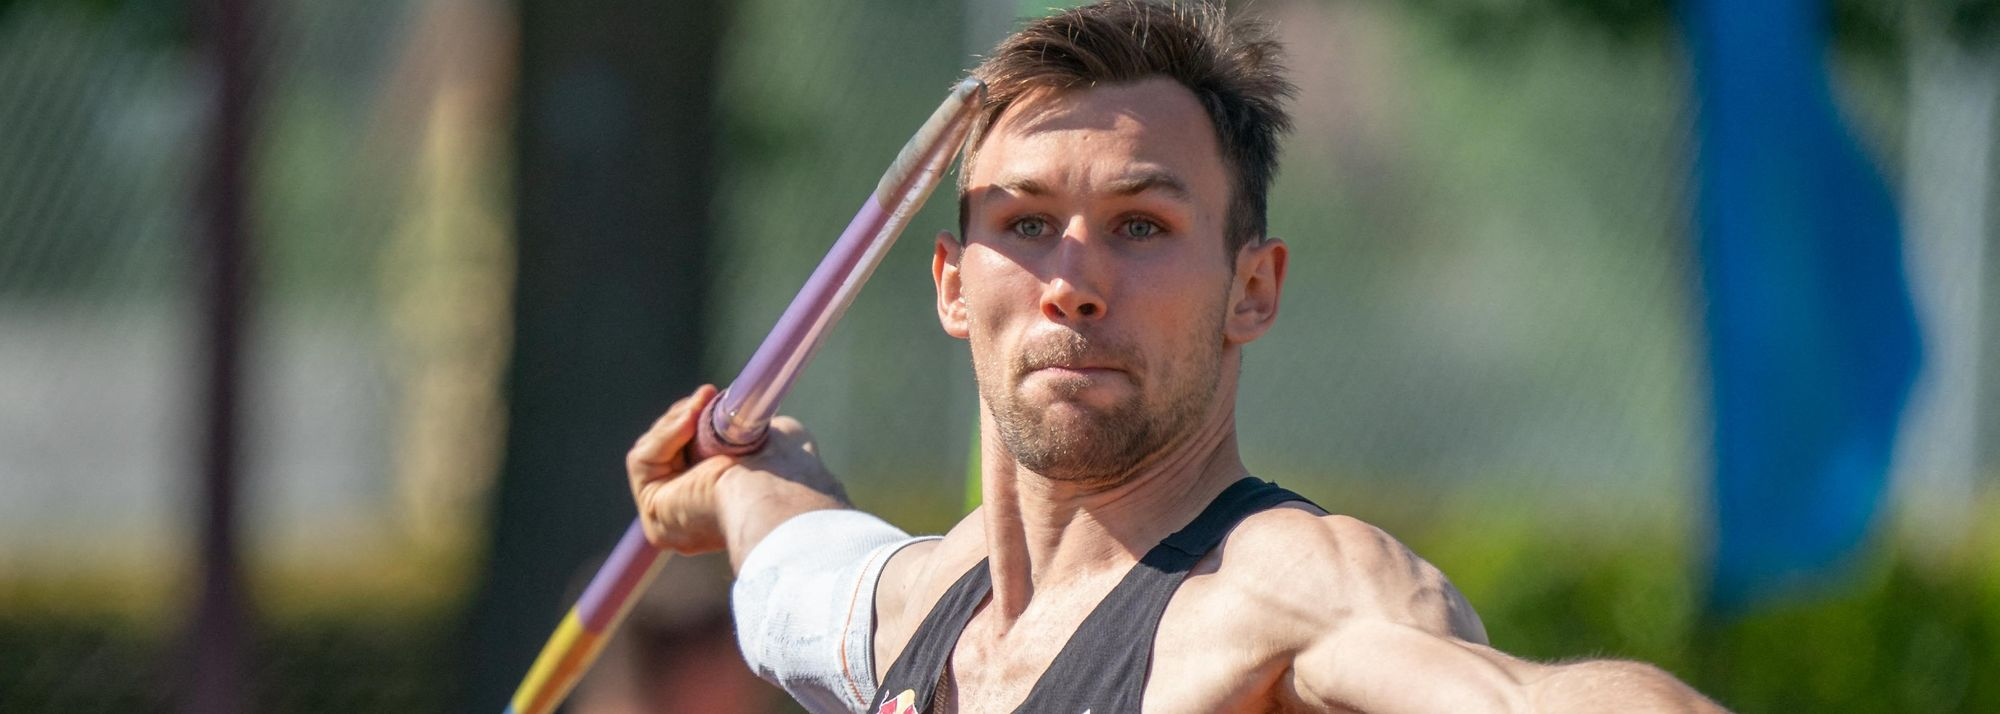 Germany's Niklas Kaul will be among the athletes looking to secure an Olympic spot when the World Athletics Challenge – Combined Events moves on to the Stadtwerke Ratingen Mehrkampf-Meeting on 19-20 June.